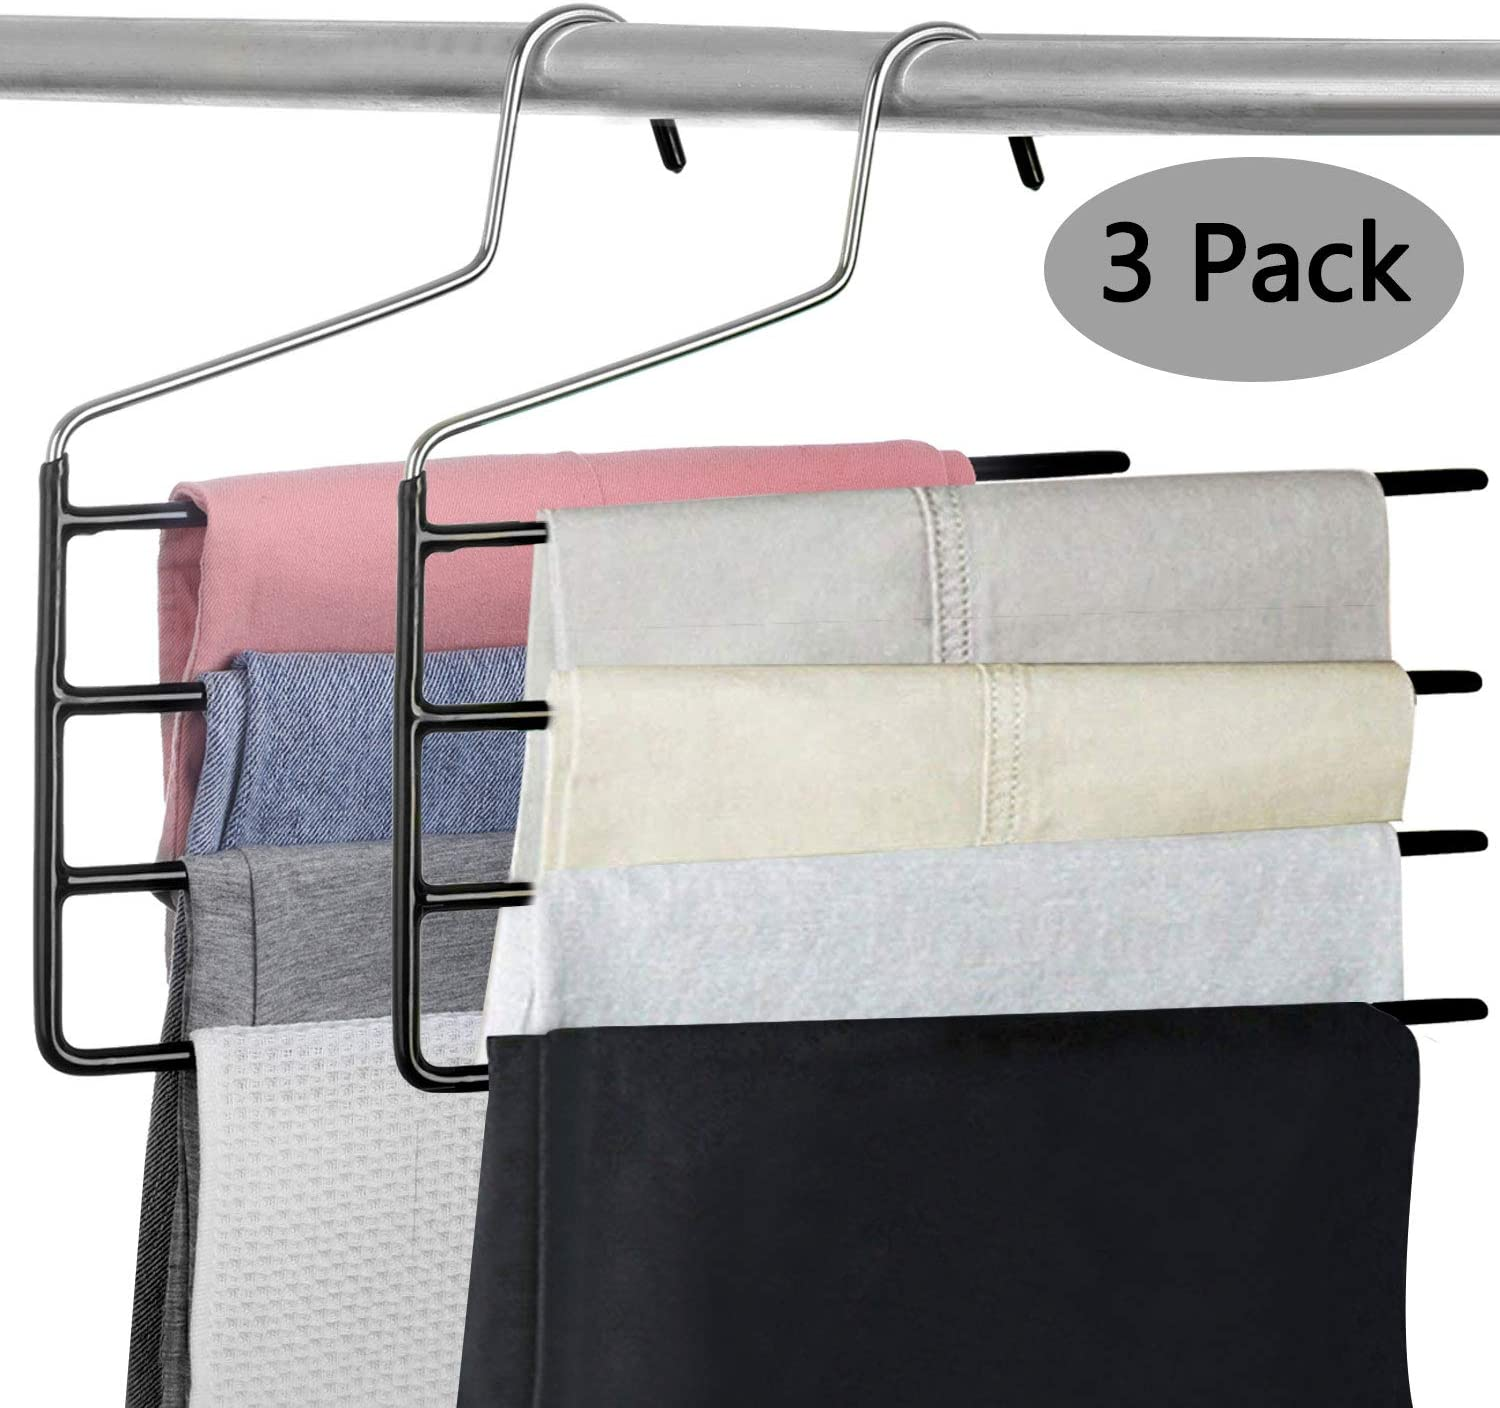 Pants Hanger Multi-Layer Jeans Trouser Hanger Closet Stainless Steel Rack Space Saver for Tie Scarf Shock Jeans Towel Clothes(3 Pack )